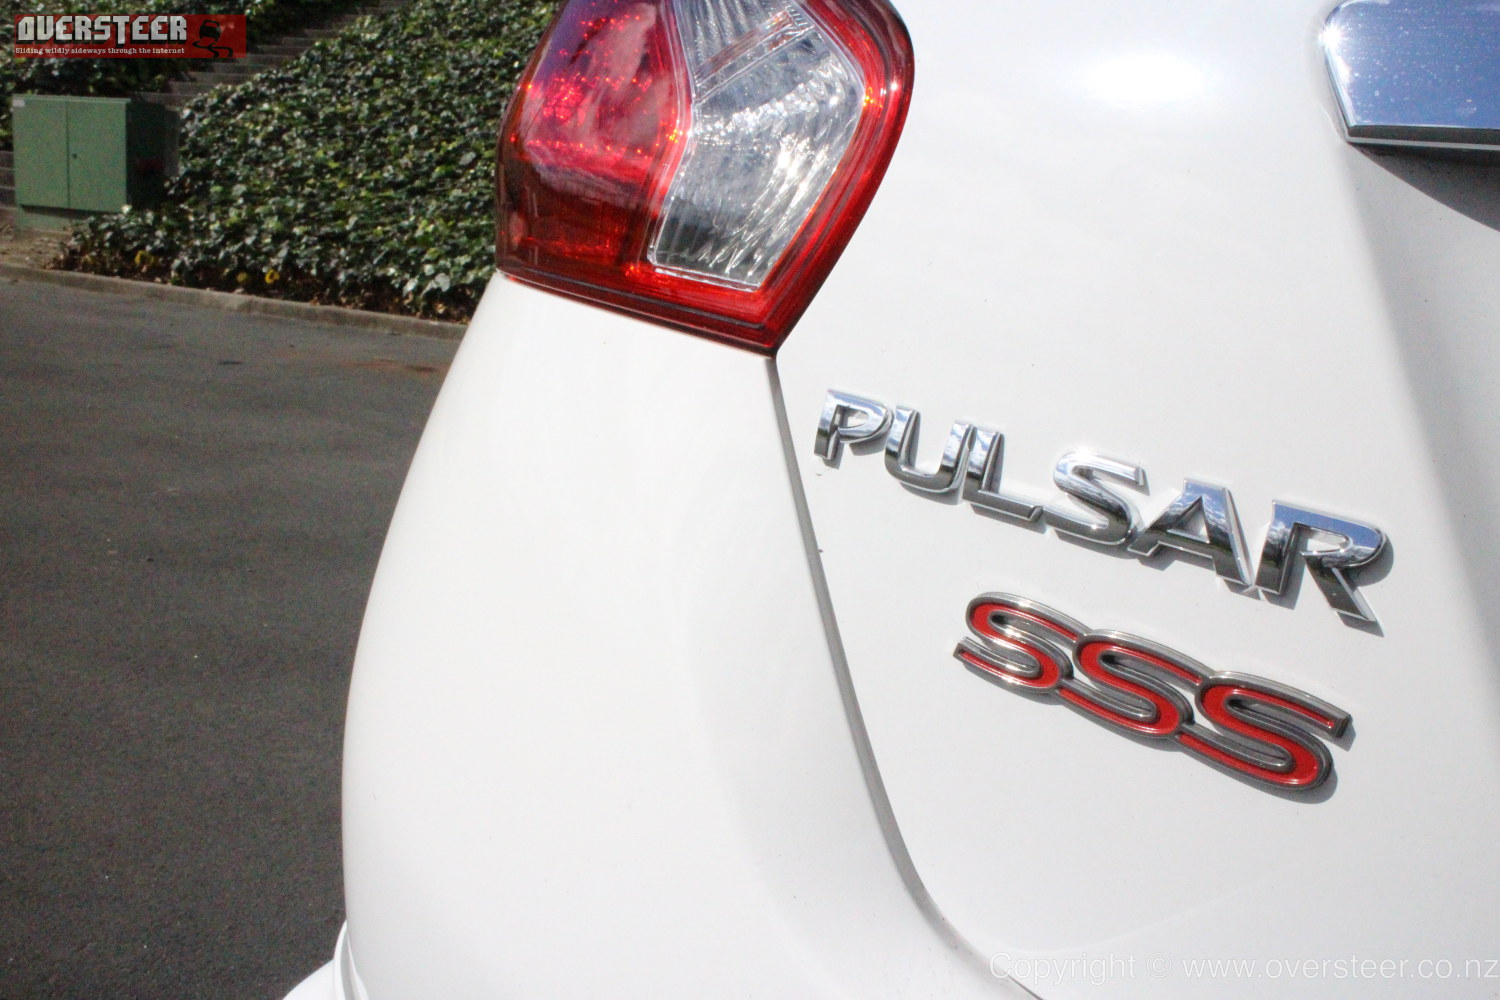 ROAD TEST: Nissan Pulsar SSS